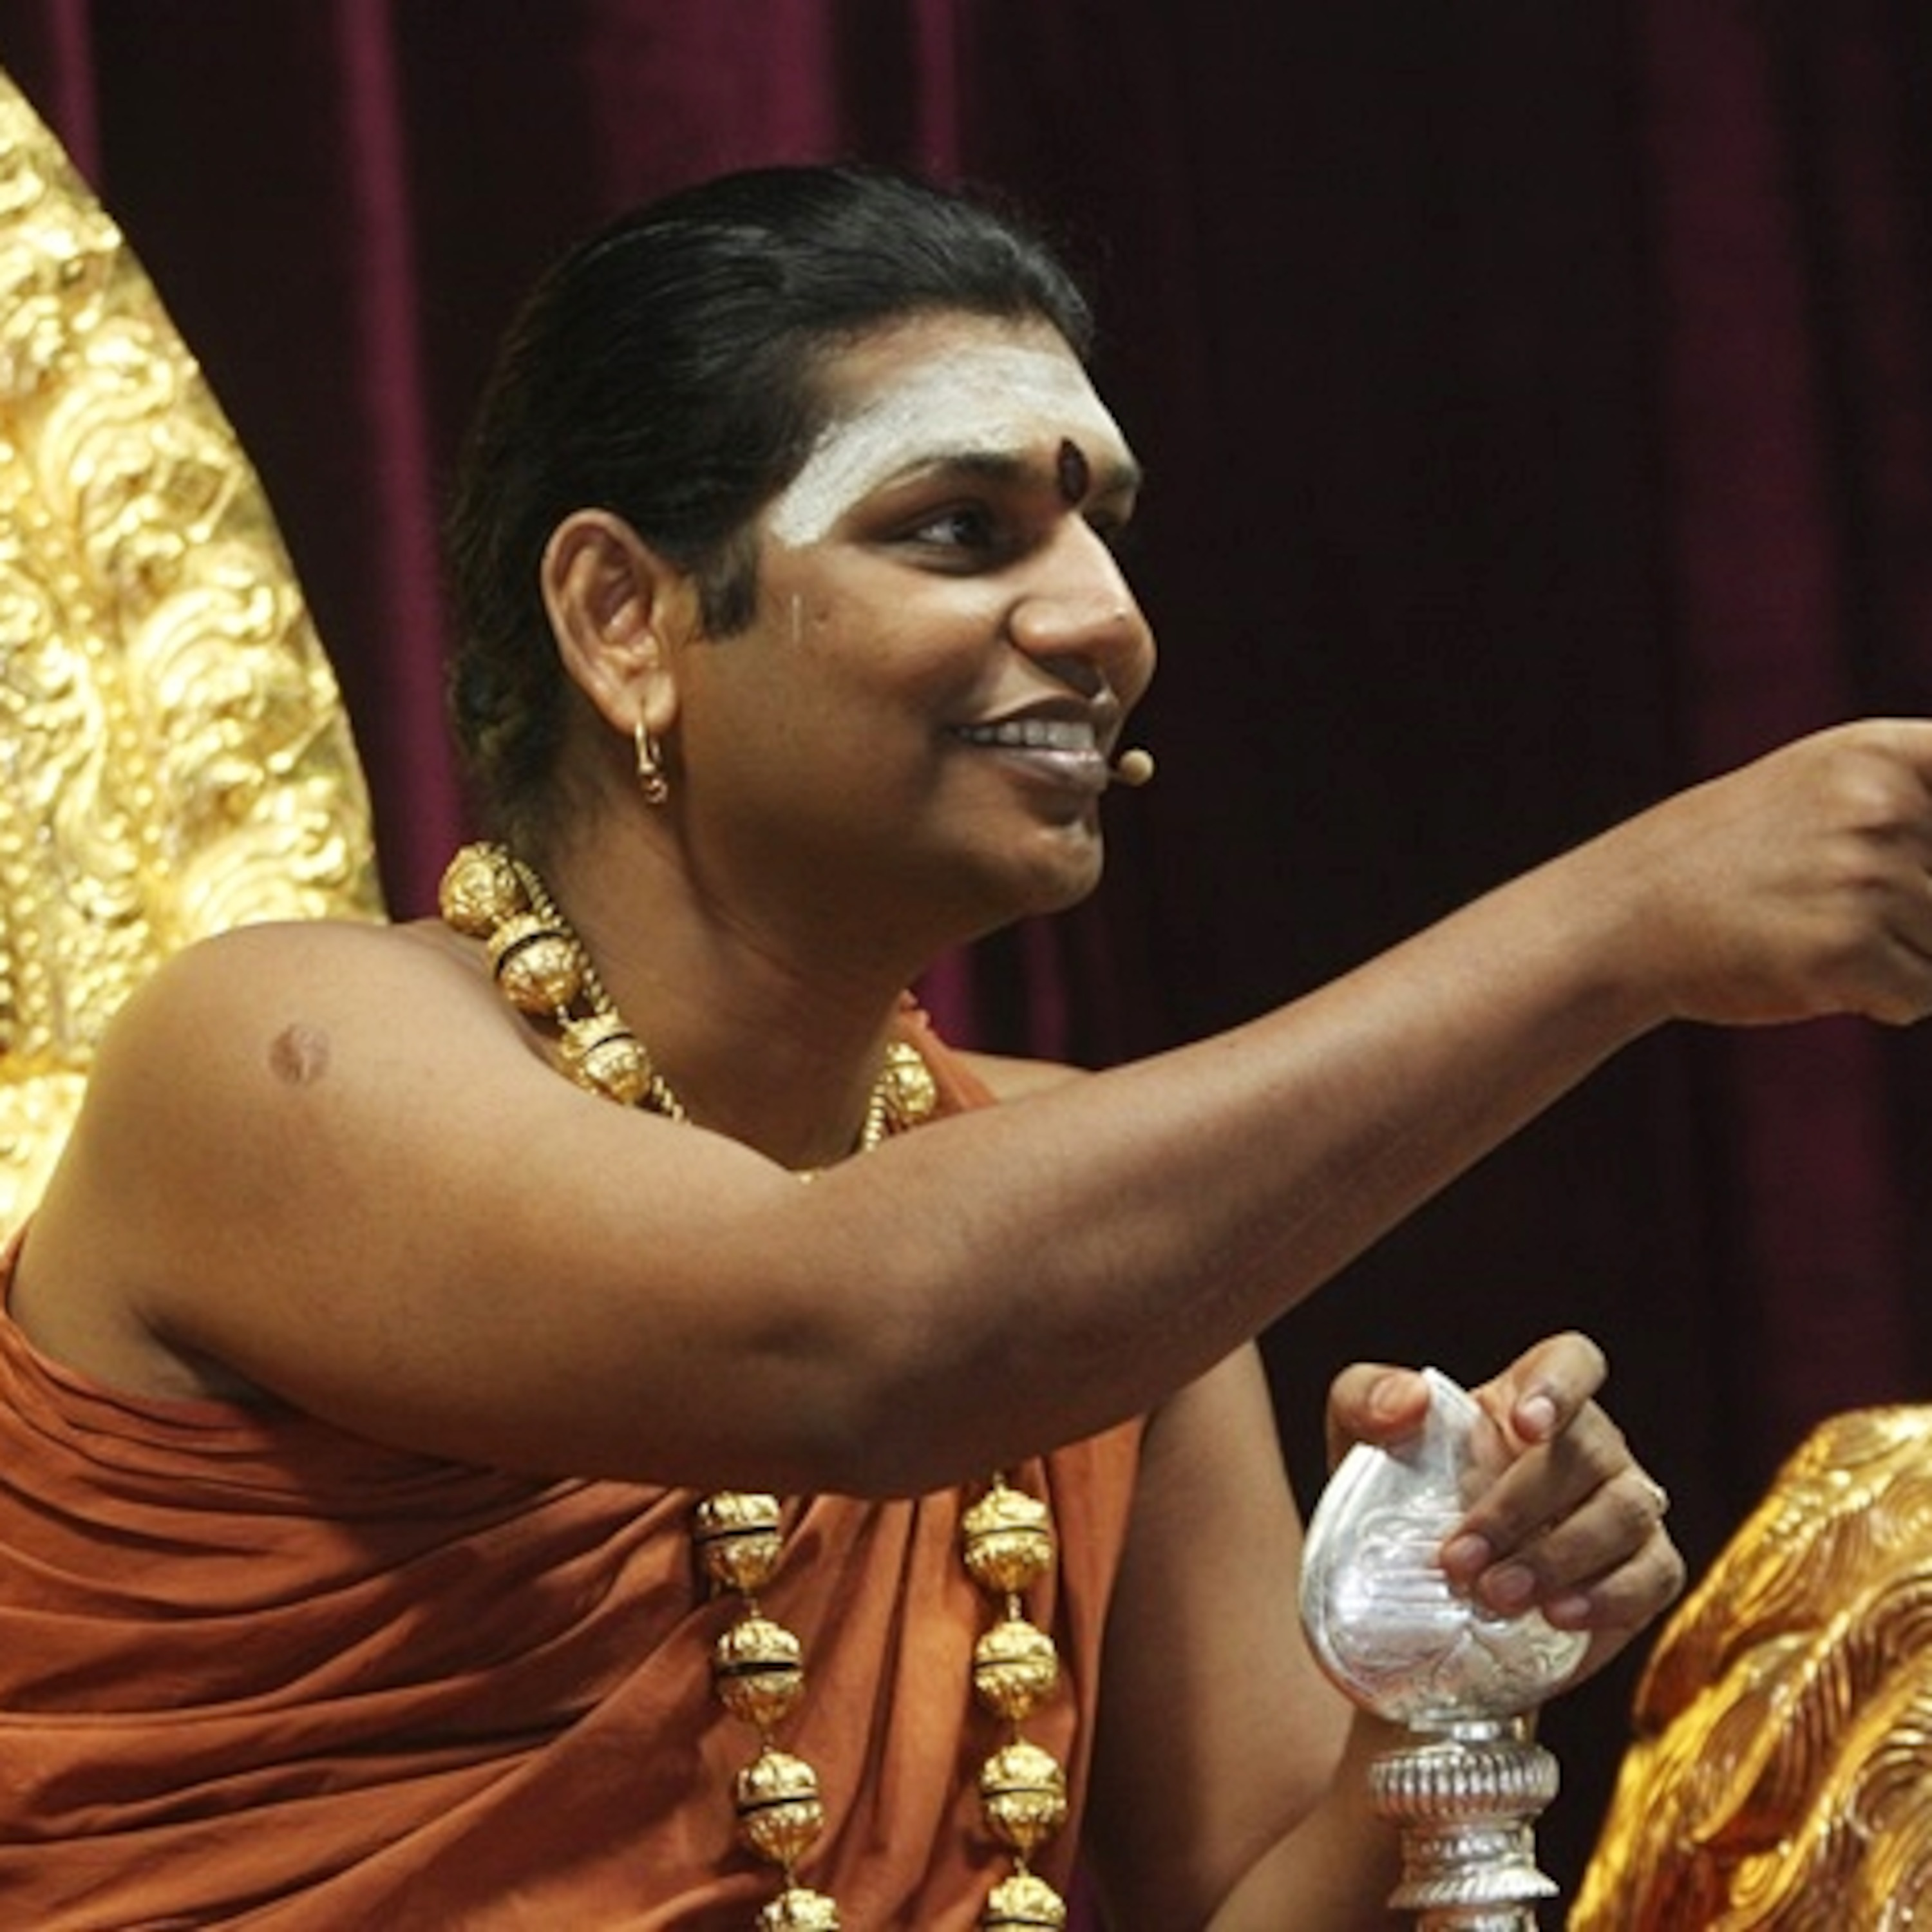 Episode 108 - Nithyananda Podcast - Life is for Enriching, Part II